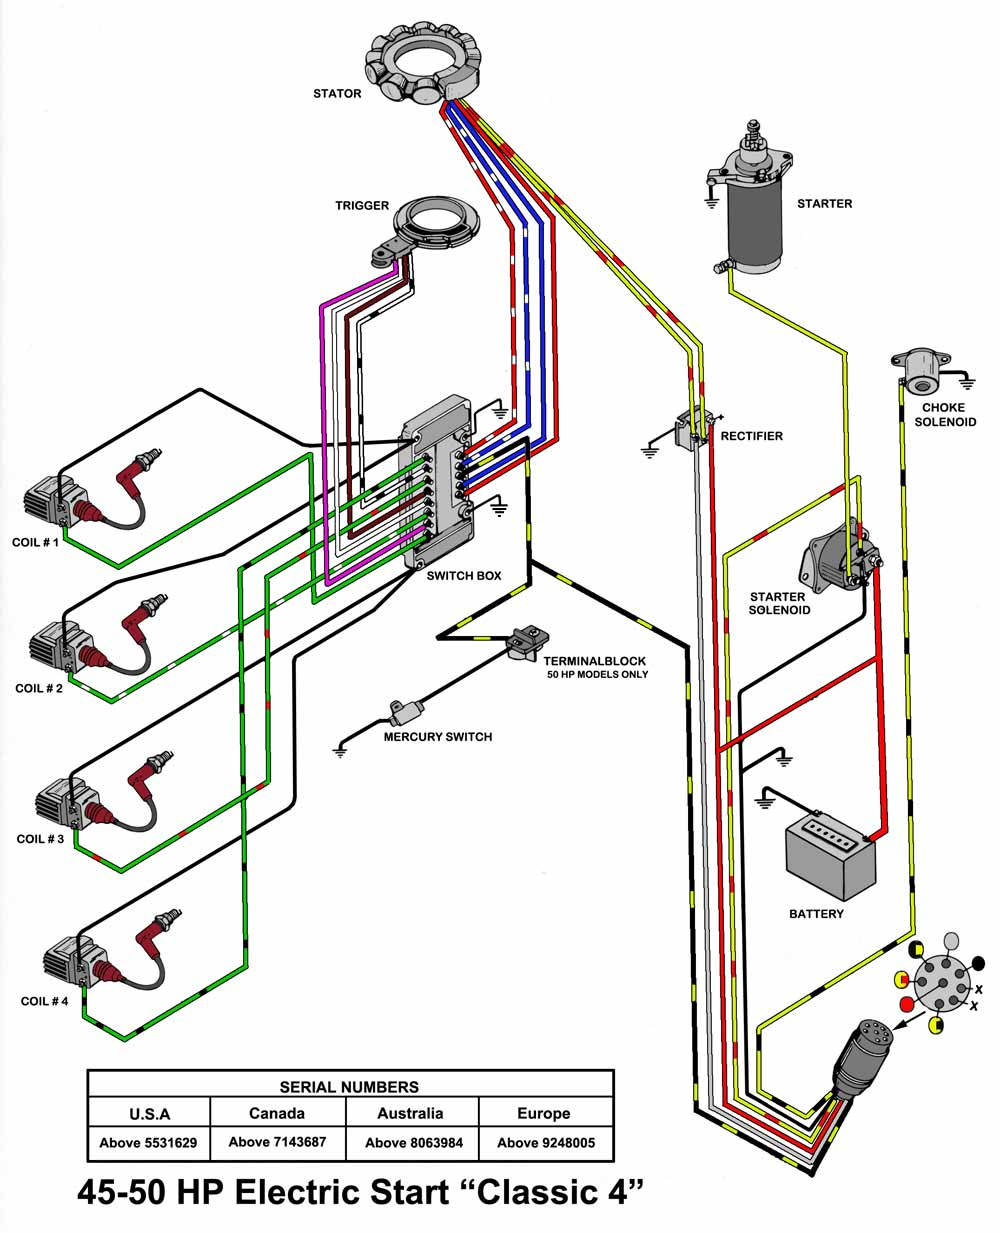 Wiring Harness Diagram 85 40 Hp Mariner - Wiring Diagram Online on johnson wiring diagram, mako wiring diagram, chevrolet wiring diagram, omc wiring diagram, sears wiring diagram, clark wiring diagram, sea ray wiring diagram, marine power wiring diagram, lowe wiring diagram, viking wiring diagram, seaswirl wiring diagram, trojan wiring diagram, nissan wiring diagram, polaris wiring diagram, evinrude etec wiring diagram, elan wiring diagram, vip wiring diagram, smoker craft wiring diagram, marine engine wiring diagram, chris craft wiring diagram,